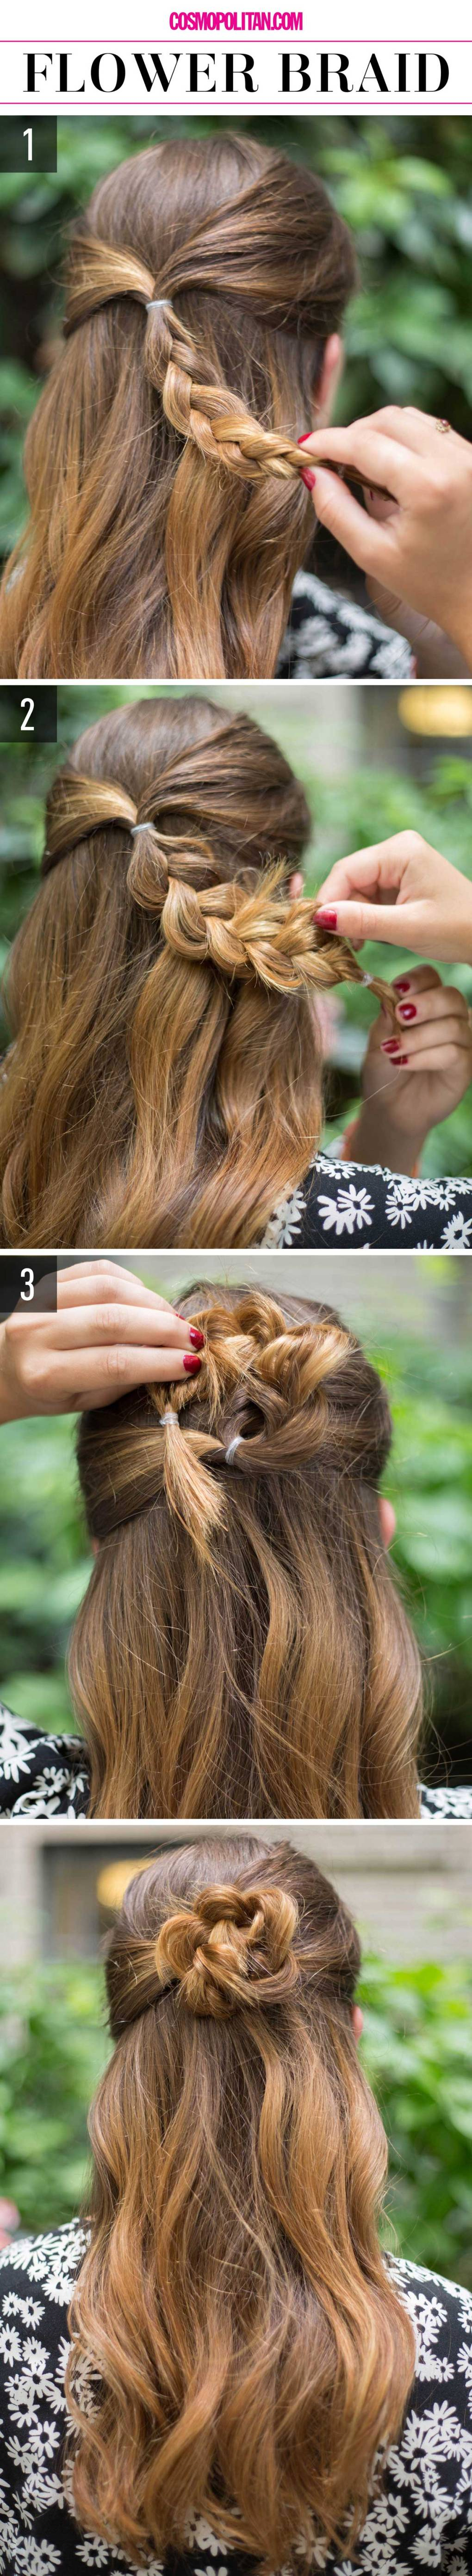 15 Super-Easy Hairstyles for Lazy Girls Who Can't Even - crazyforus